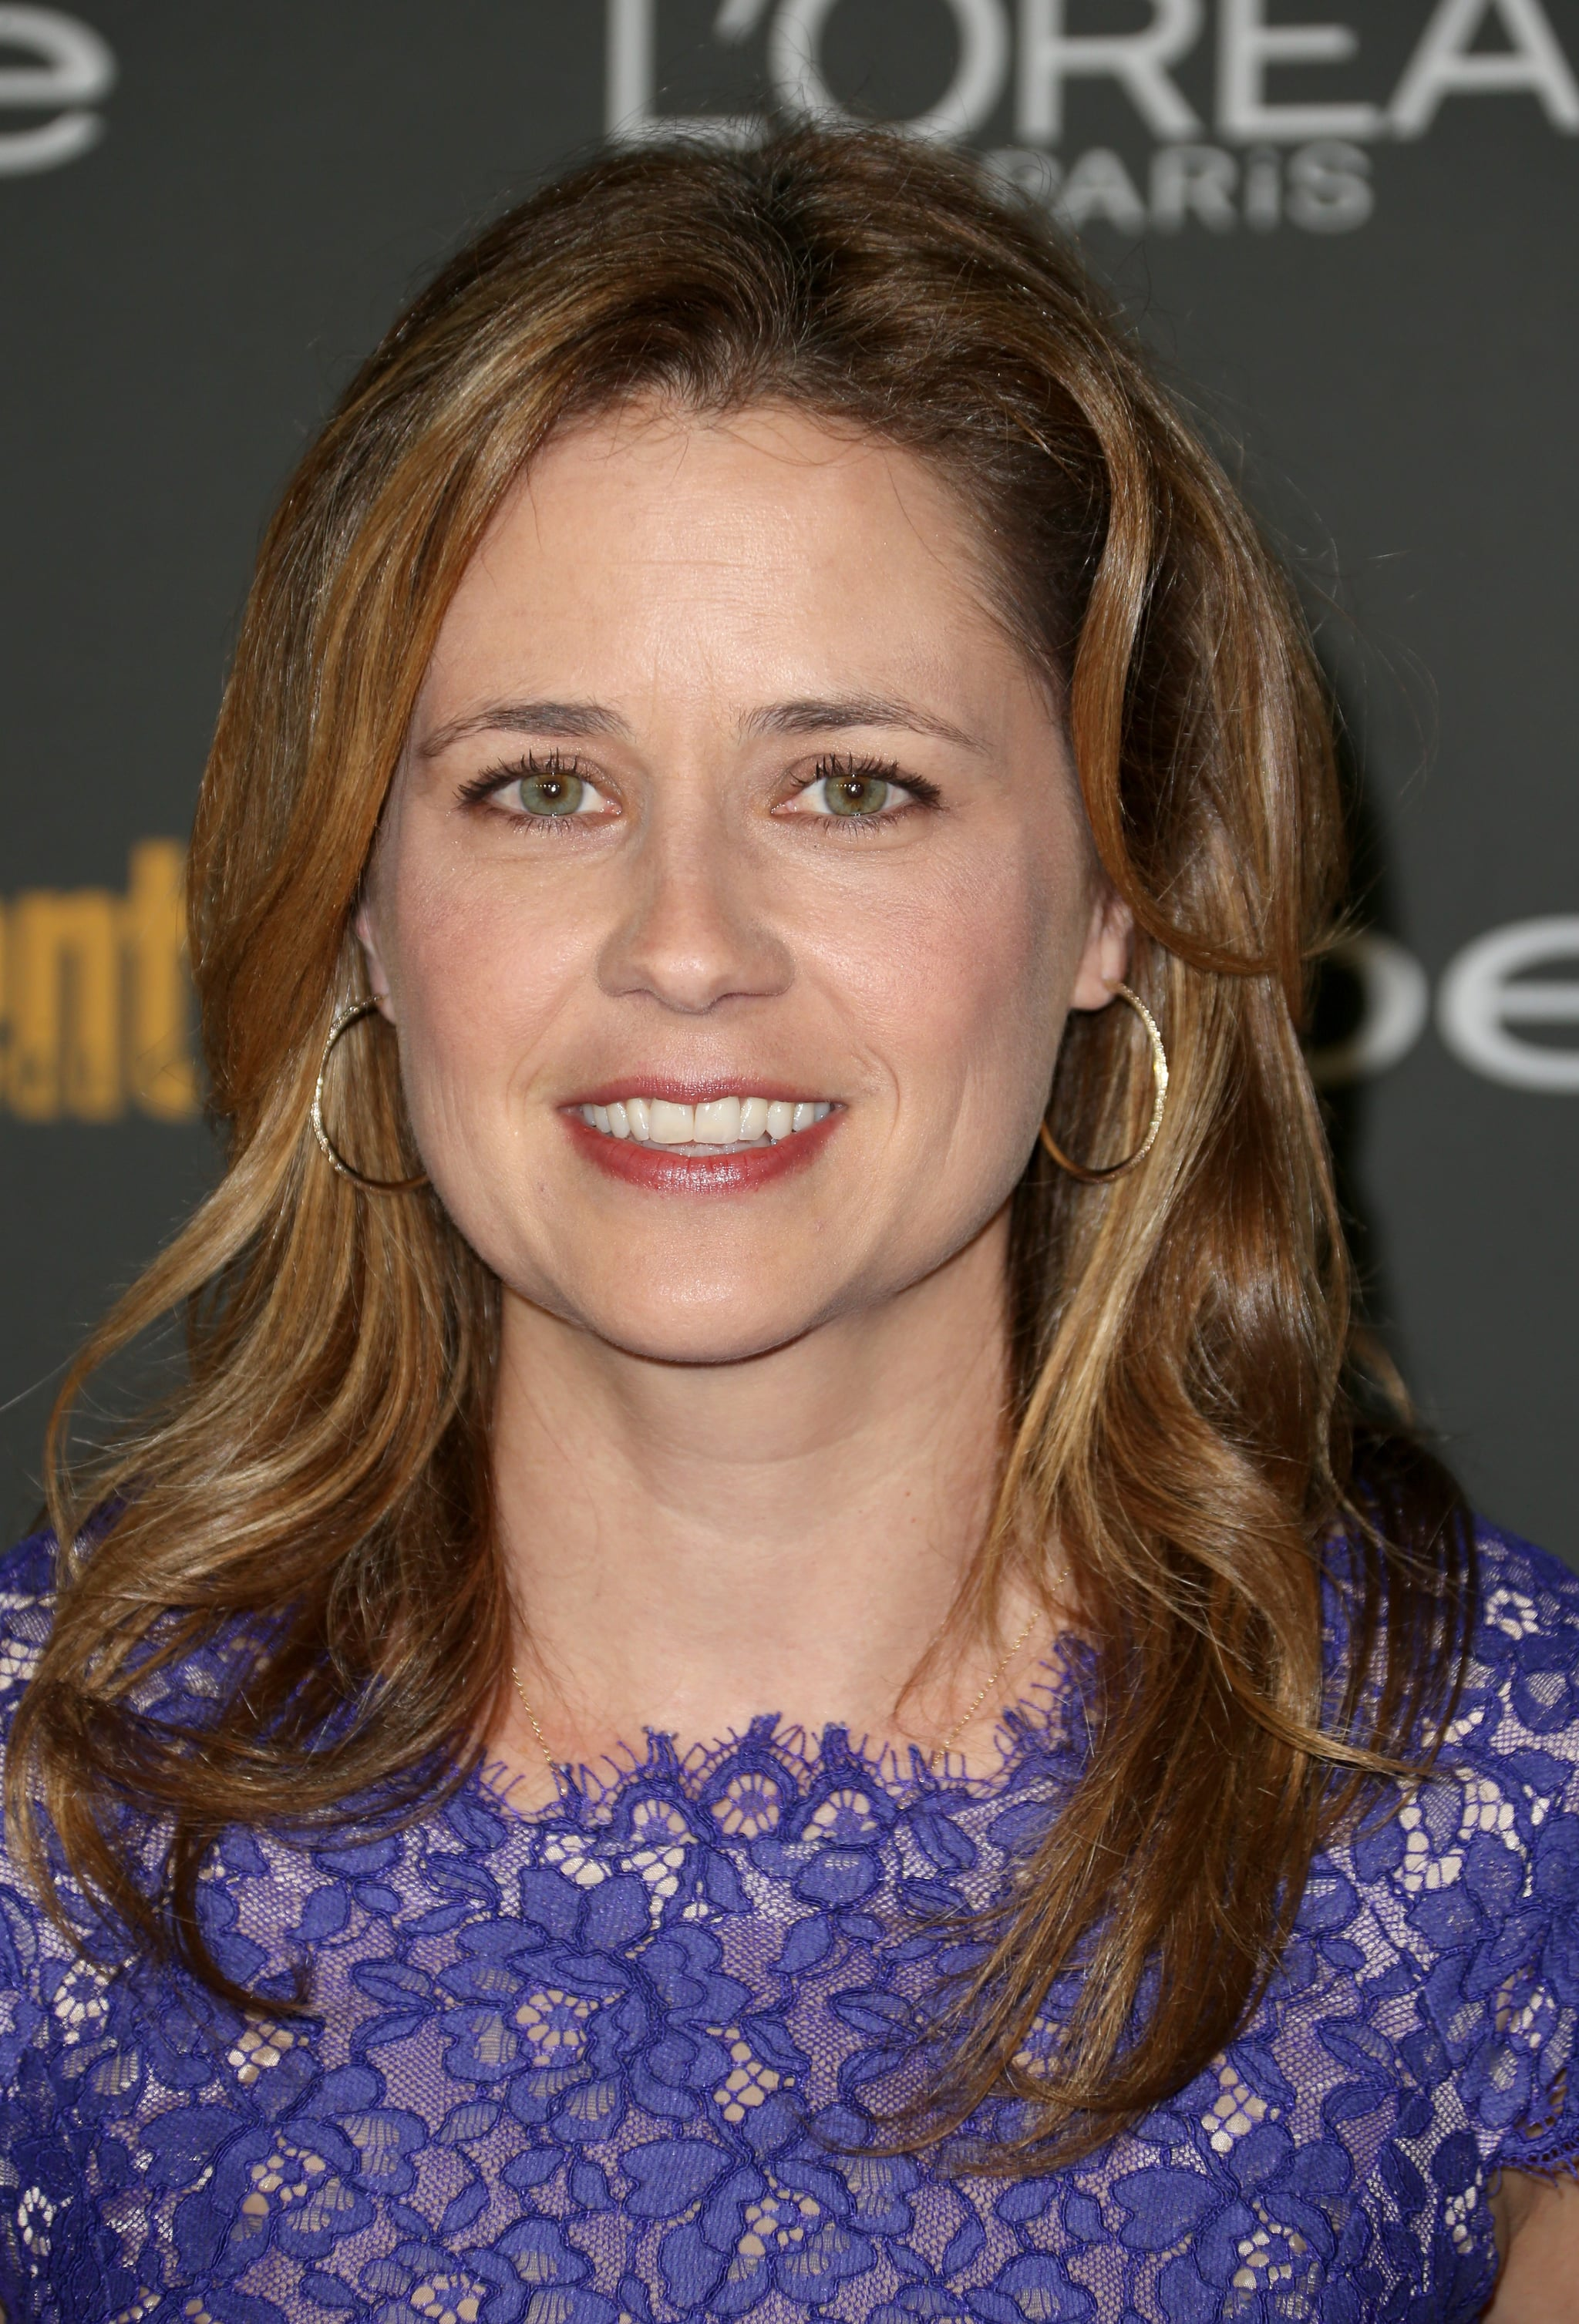 Jenna Fischer kept this easy and breezy at Entertainment Weekly's pre-Emmys party.